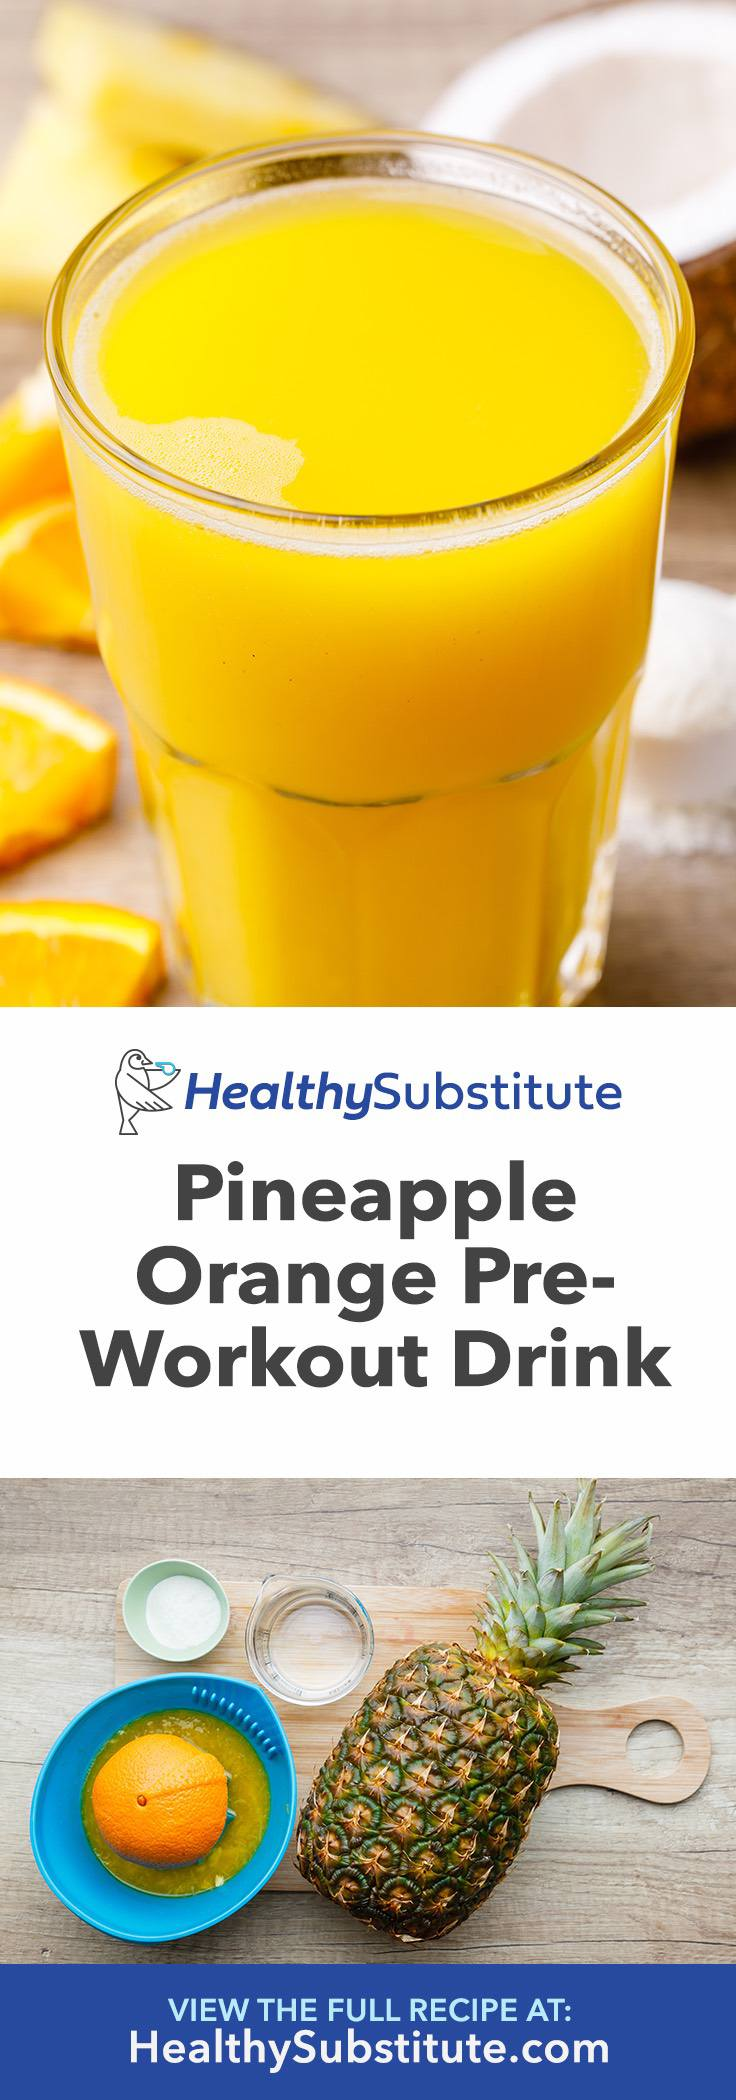 Pineapple Orange Pre-Workout Drink for Sustained Energy